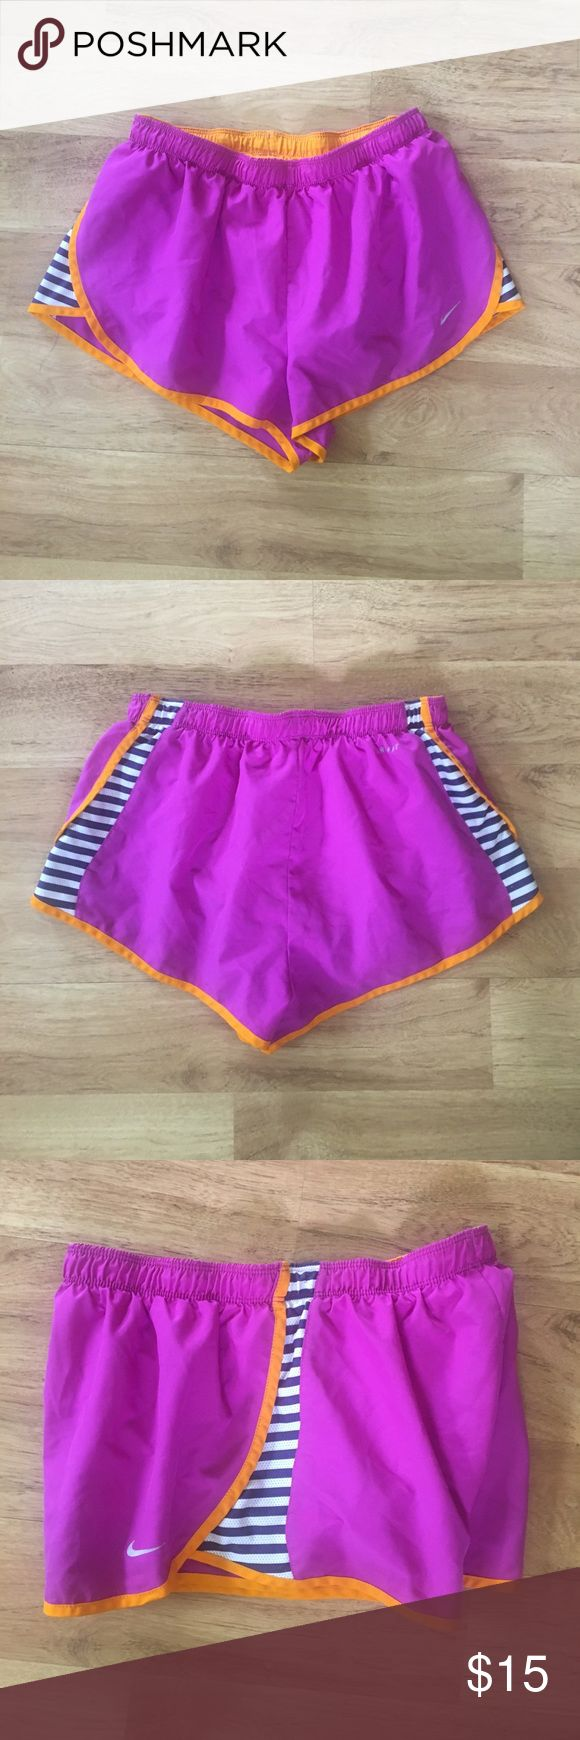 Cute Nike Dri Fit shorts! Cute Nike Dri Fit shorts! Size small, lined inside! Nike Shorts